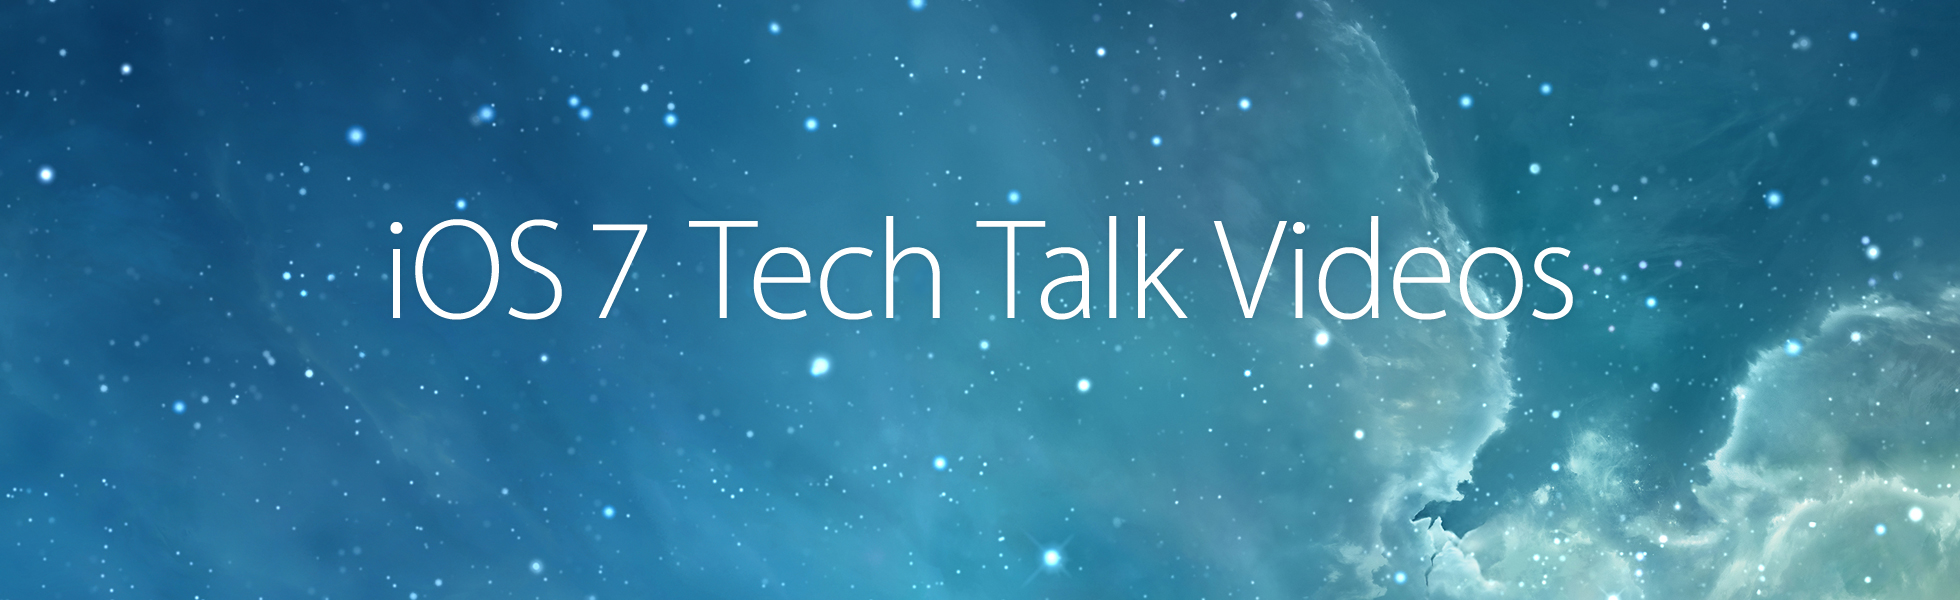 iOS 7 Tech Talks Videos